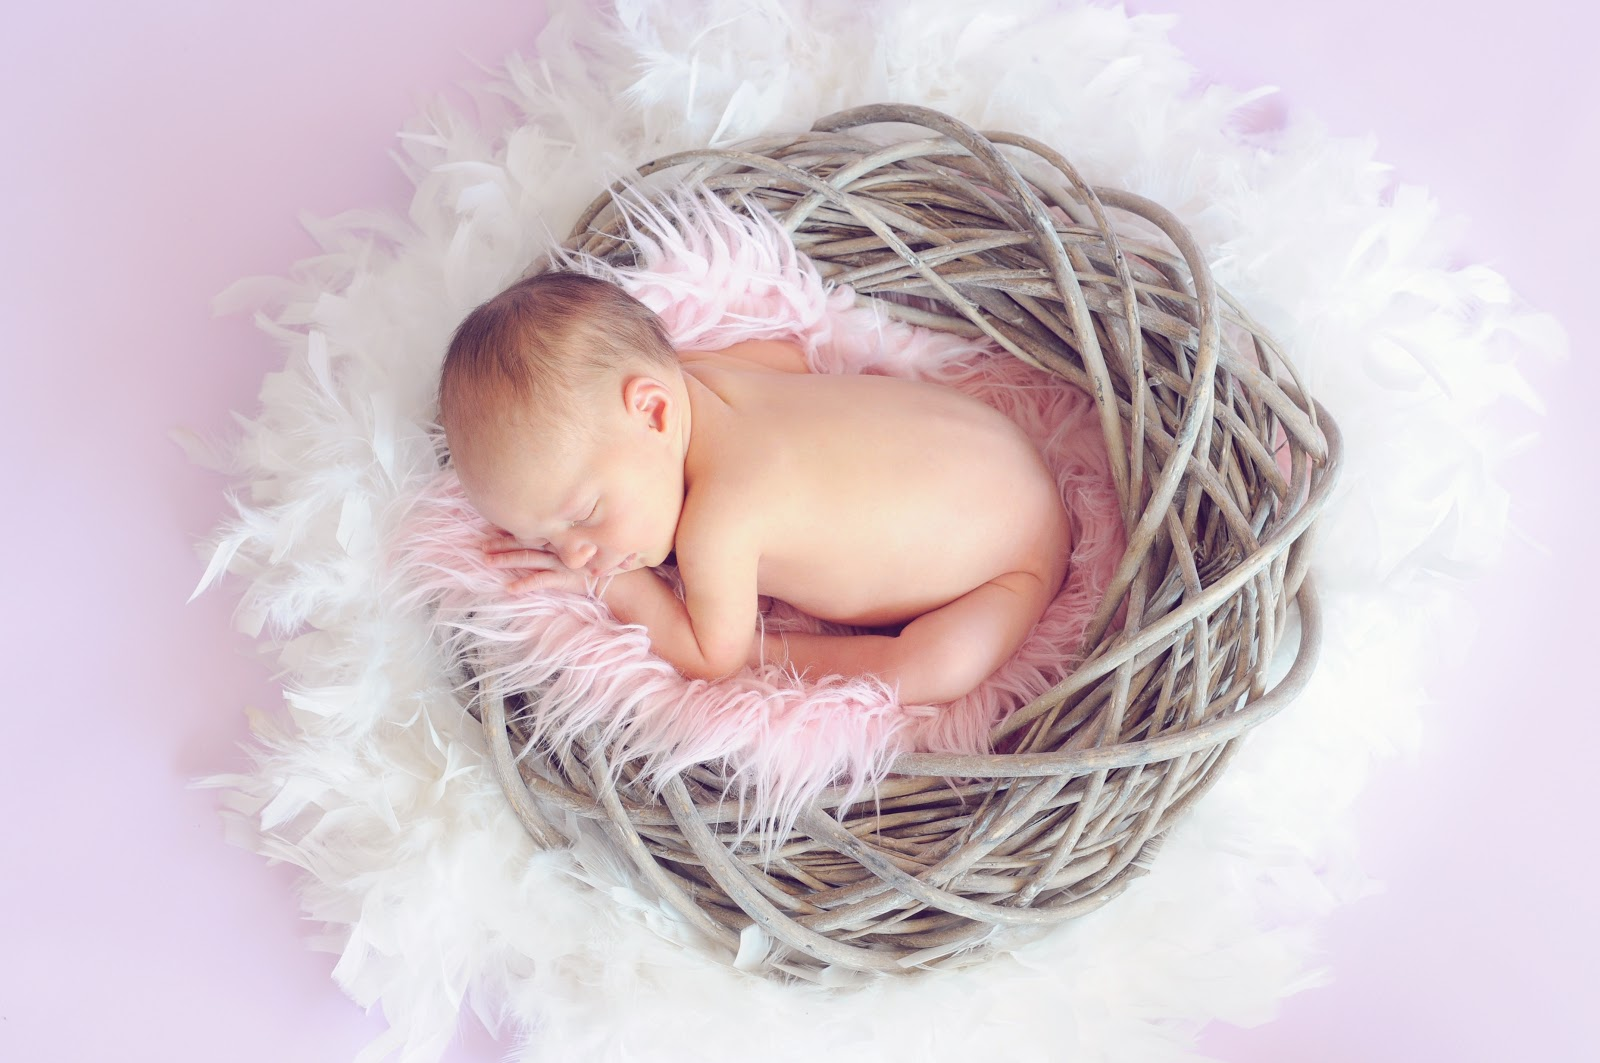 baby-sleeping-in-a-basket-and-a-round-feather-surrounding-images